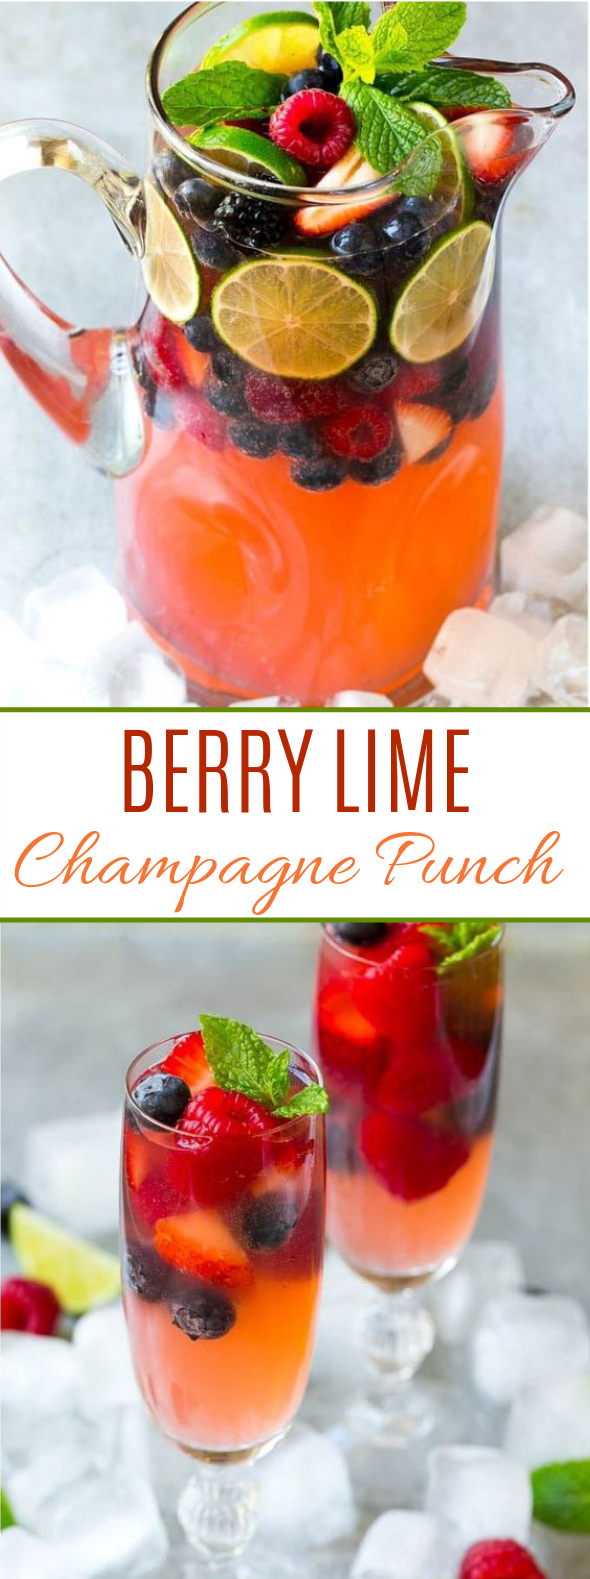 Champagne Punch with Berries #cocktail #brunch